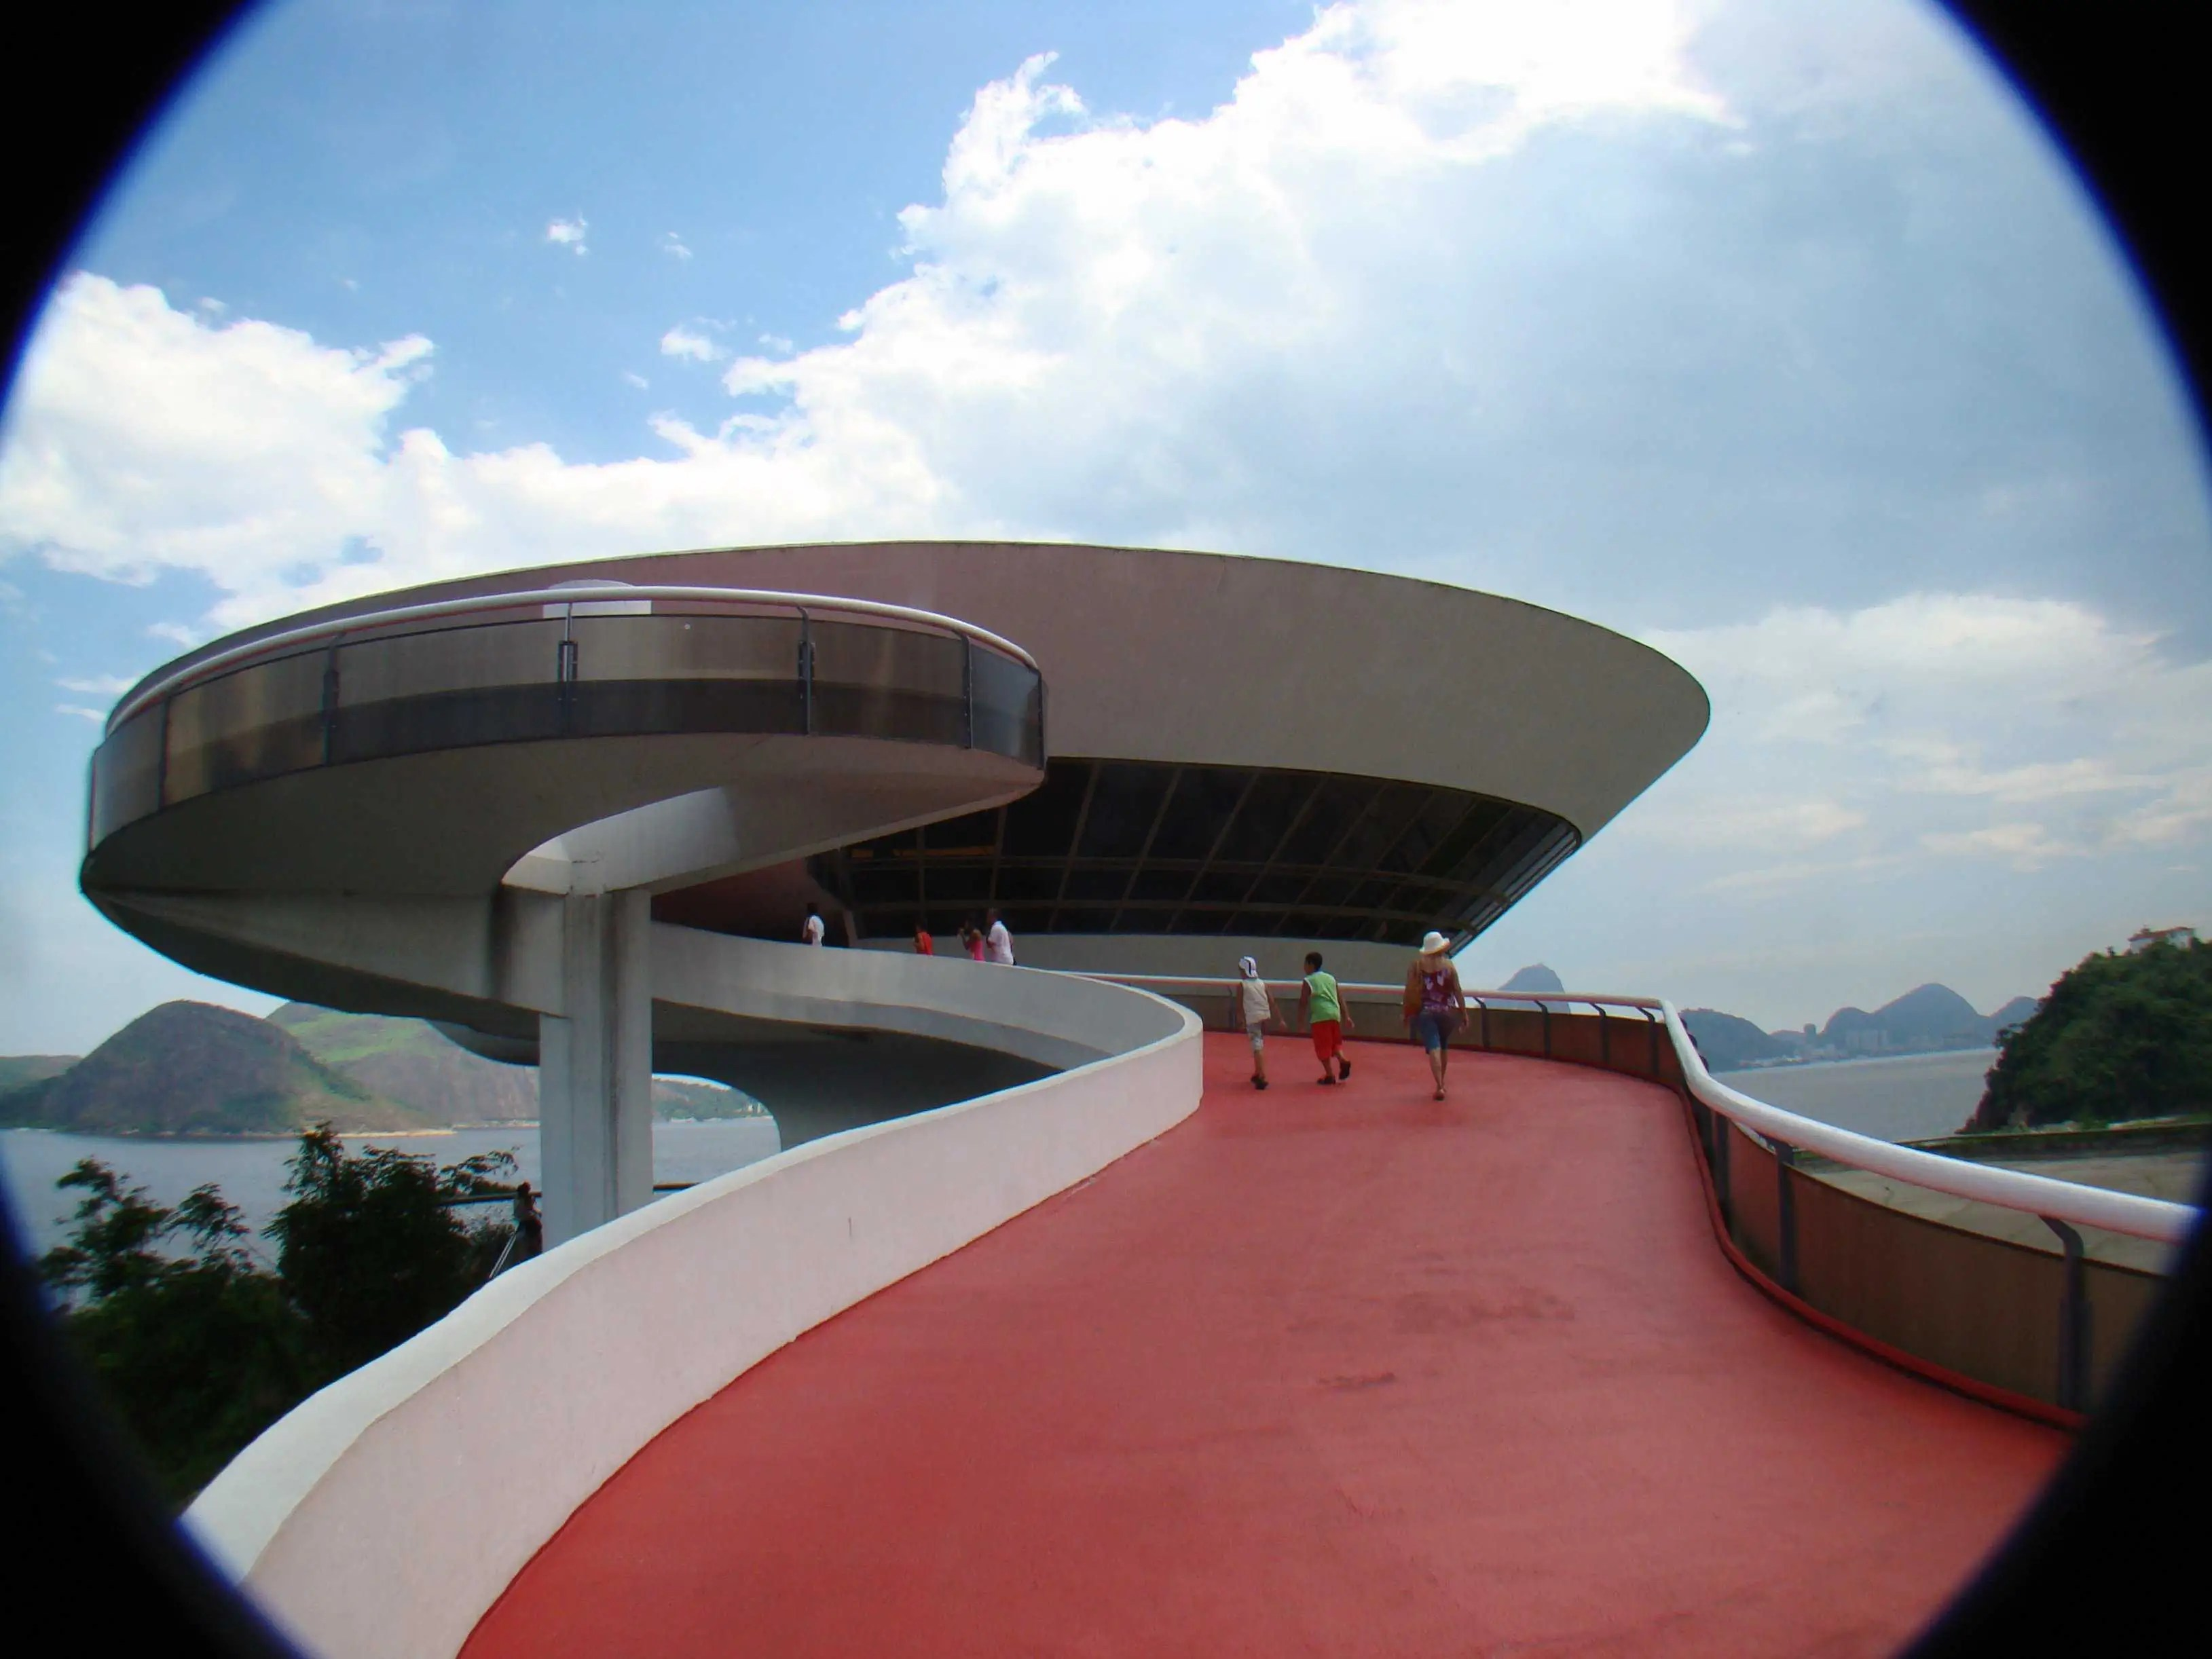 Contrary to what you might think, the Museum of Contemporary Art in Rio de Janeiro is not, in fact, a spaceship.